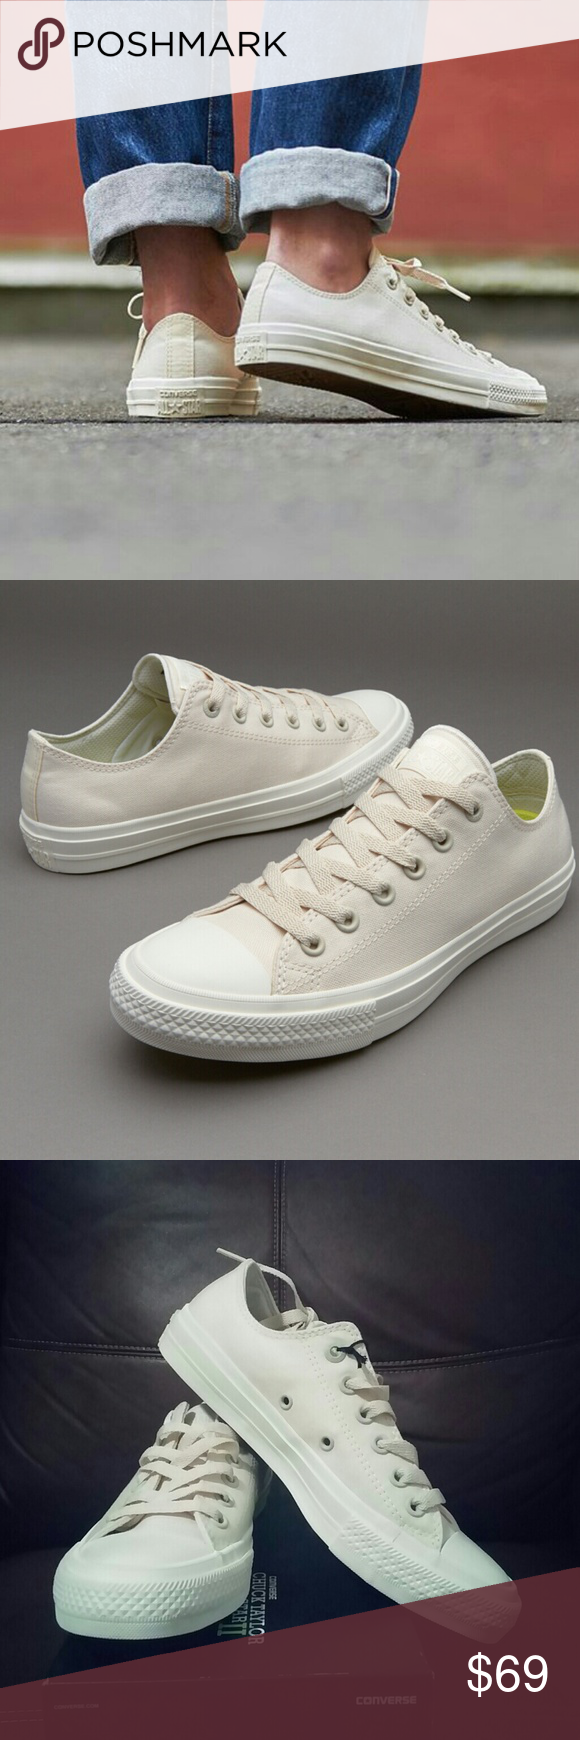 30fe650effac1 NWT Converse Chuck II 2 Cream Low Top w  Lunarlon - New in box! - Great  Spring neutral for everyday use! - Converse Chuck Taylor II with Lunarlon  insoles ...